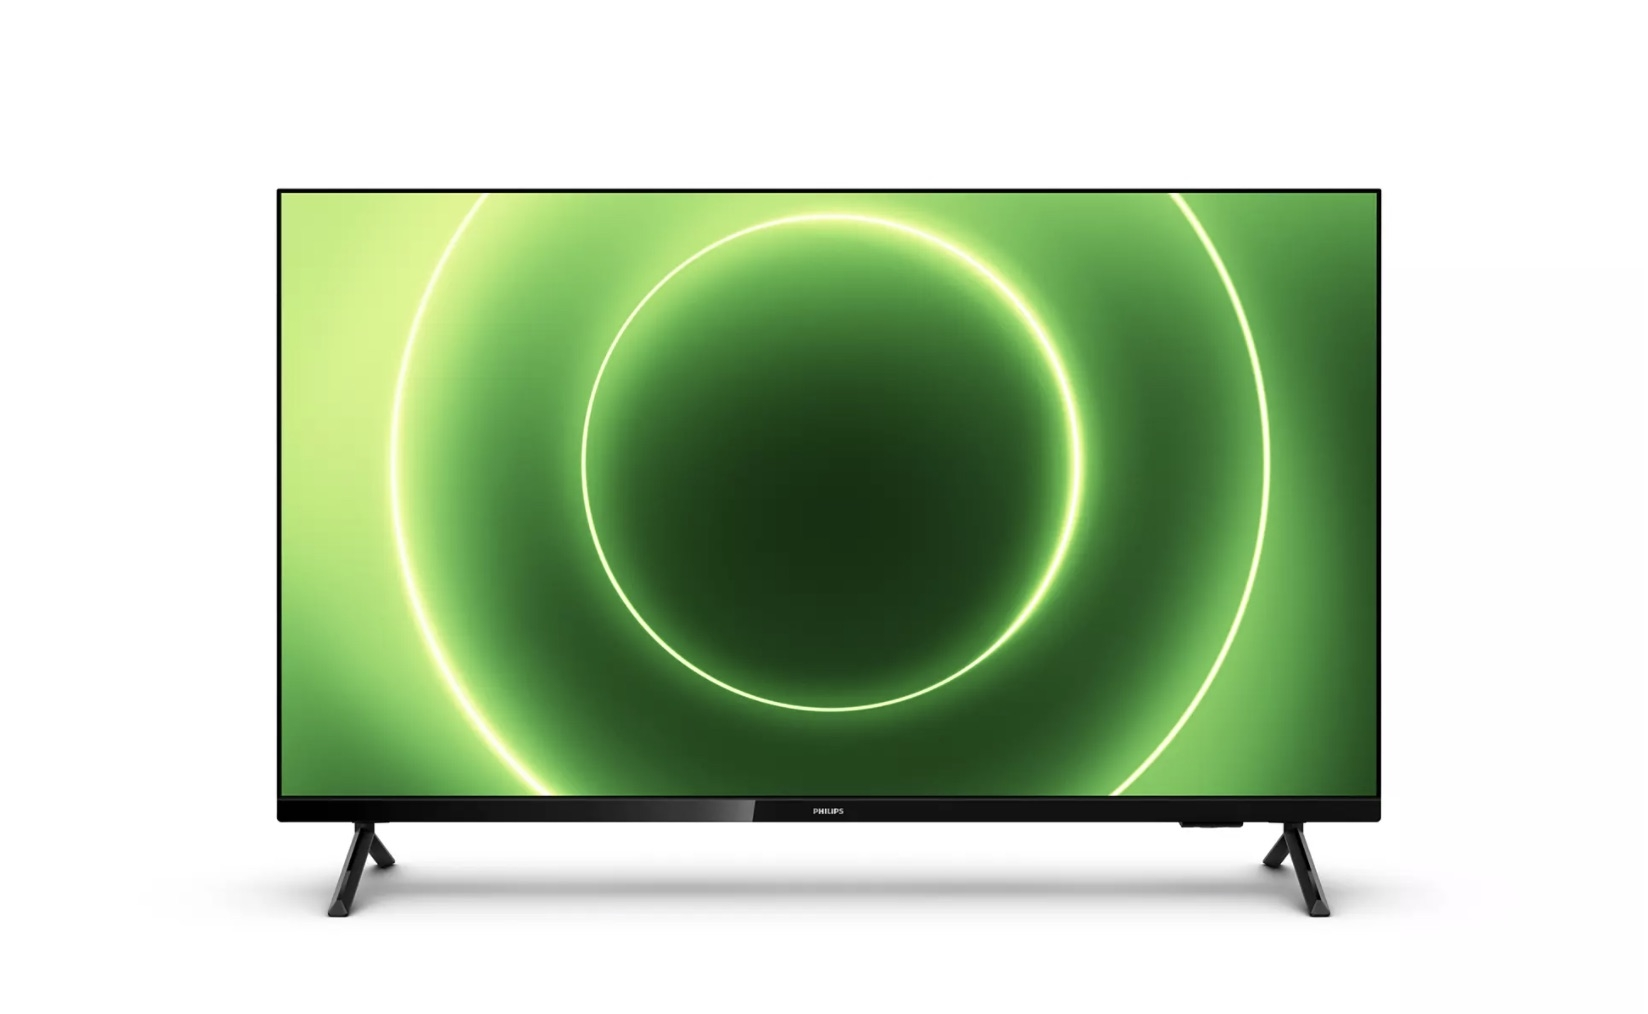 ЖК Телевизор Full HD Philips 43PFS6825 43 дюйма телевизор philips 43 43pfs6825 60 черный